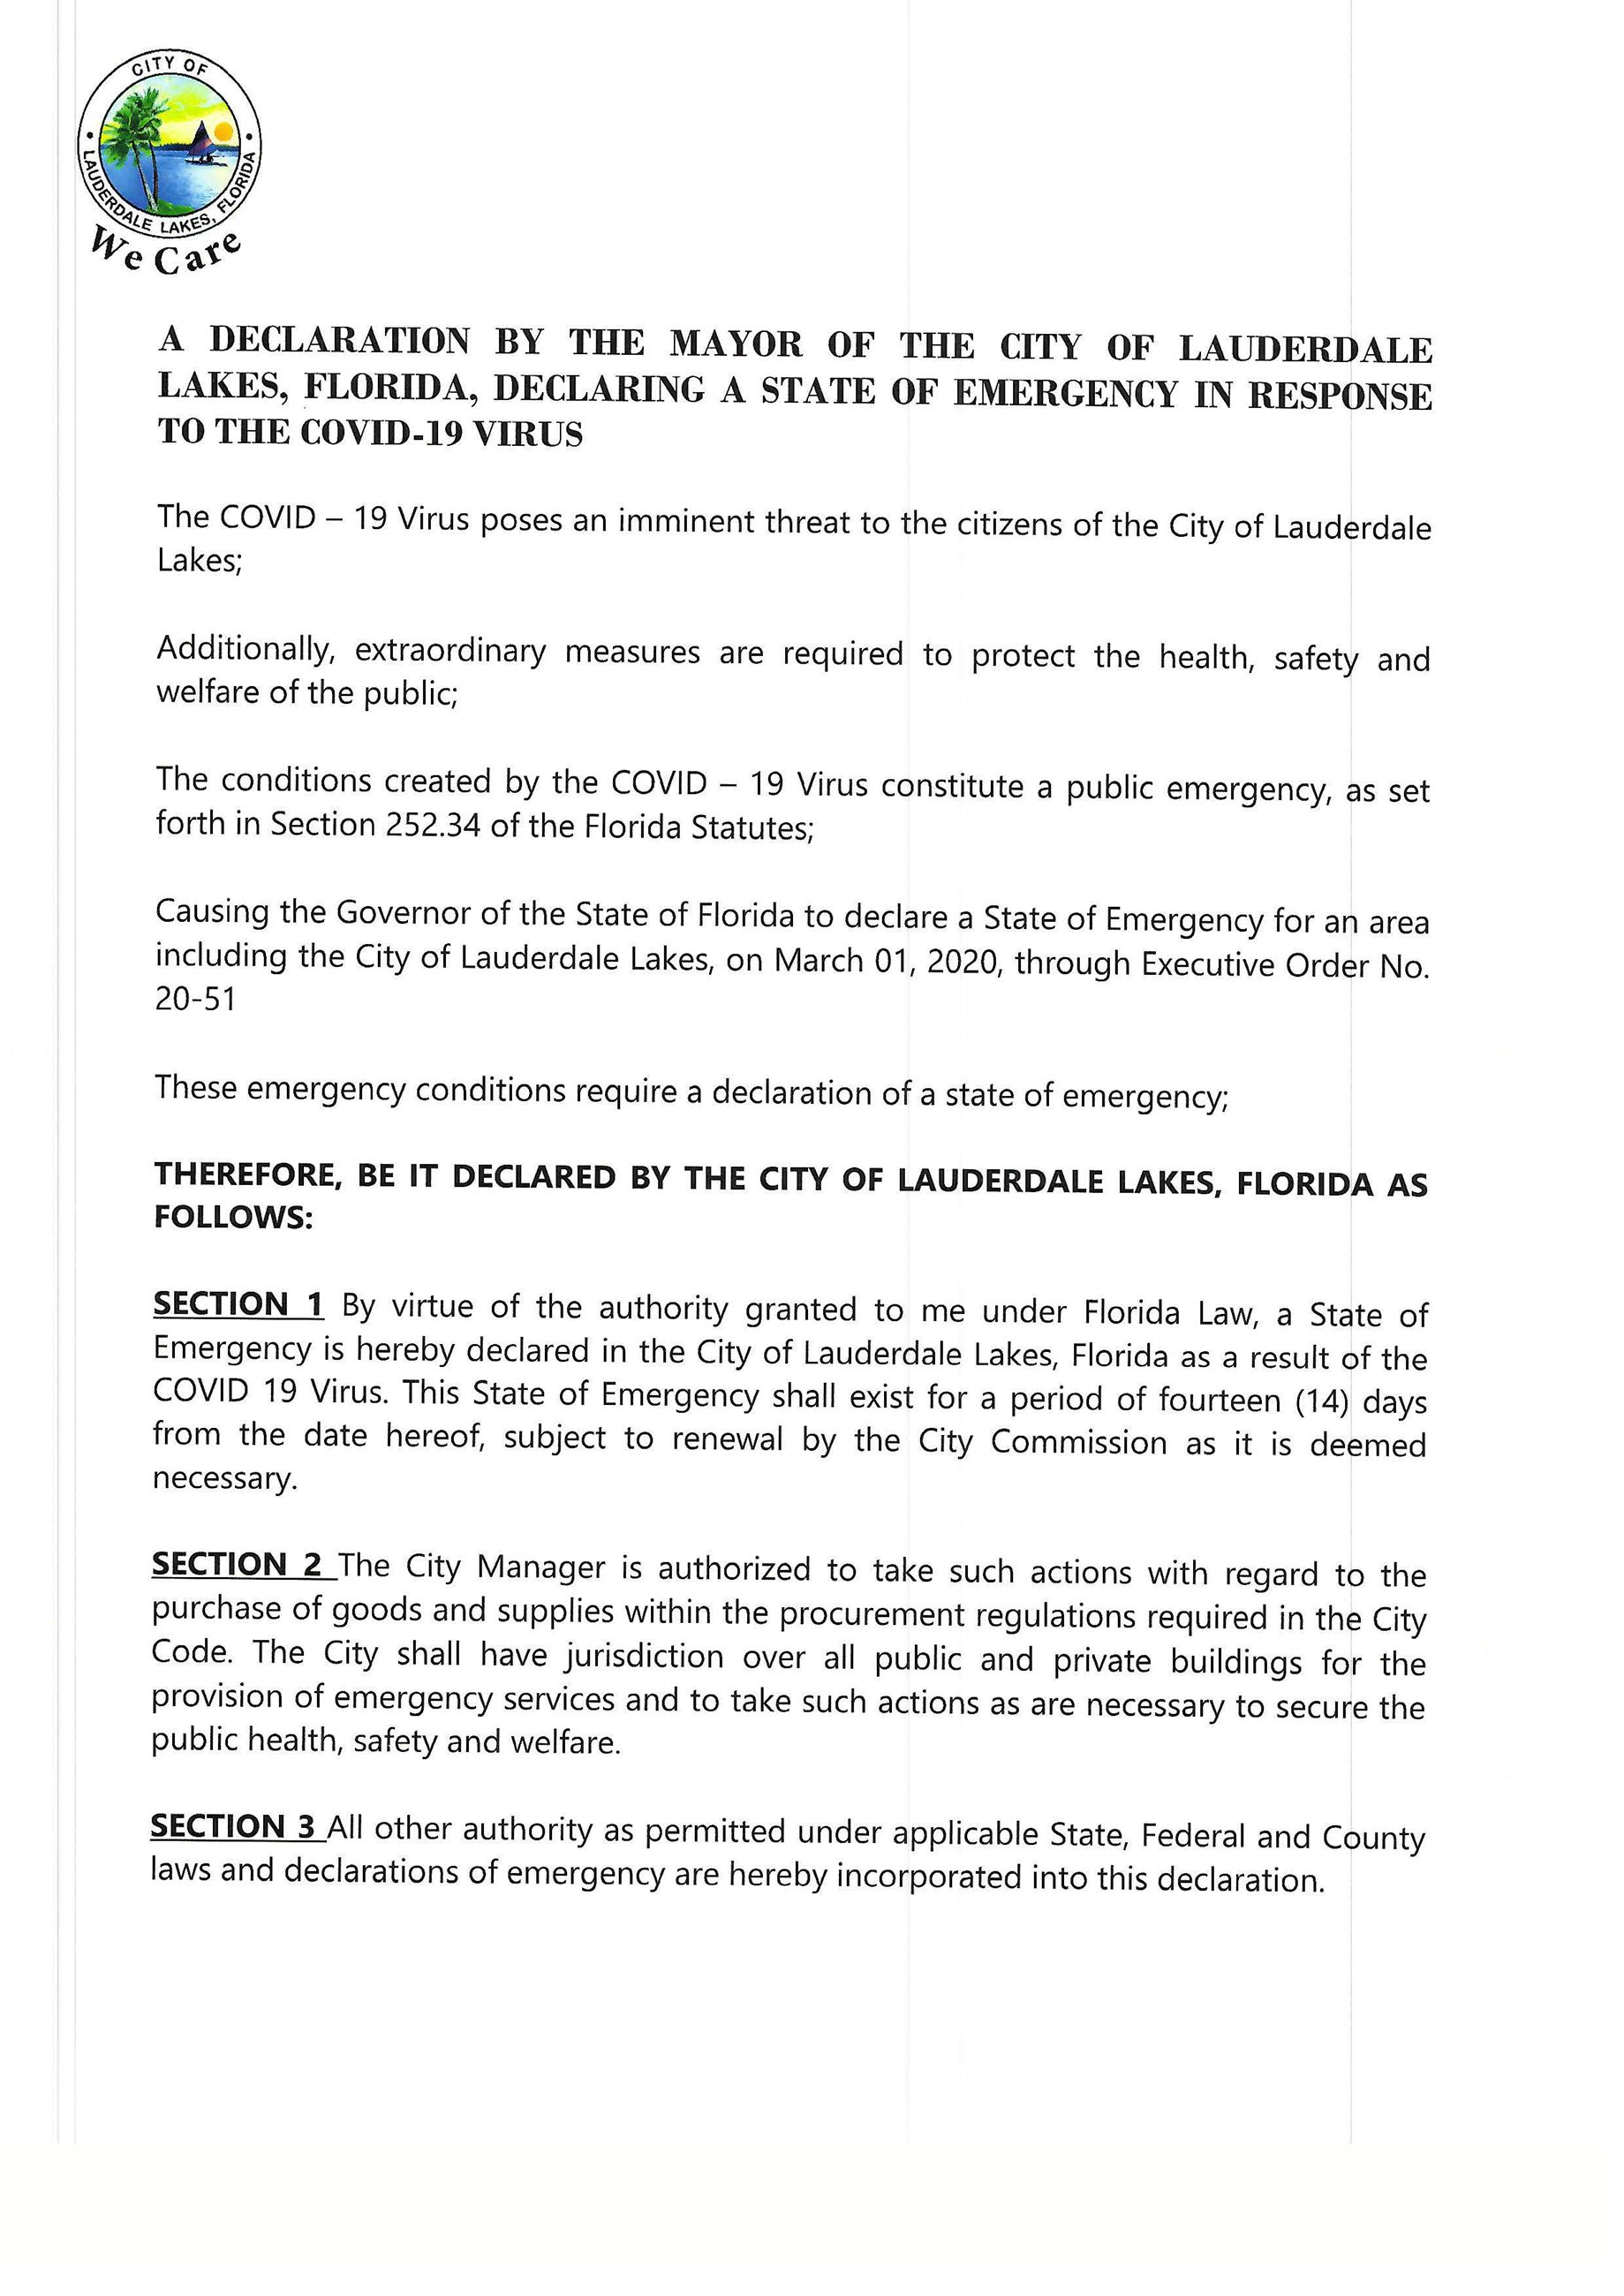 A Declaration by The Mayor of the City of Lauderdale Lake_Page_1